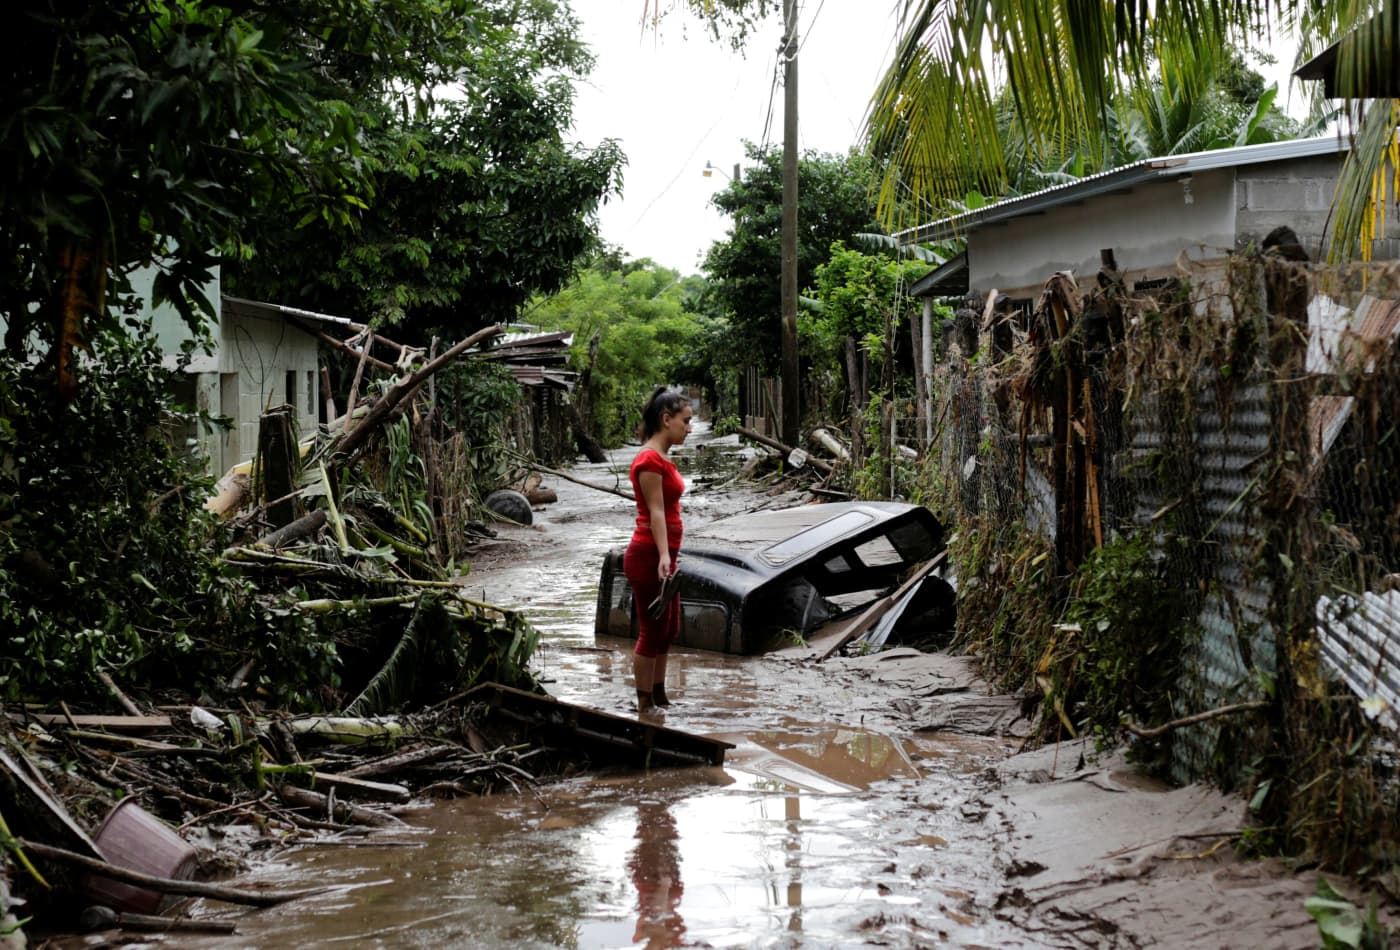 Disasters caused $210 billion in damage in 2020, showing growing cost of climate change